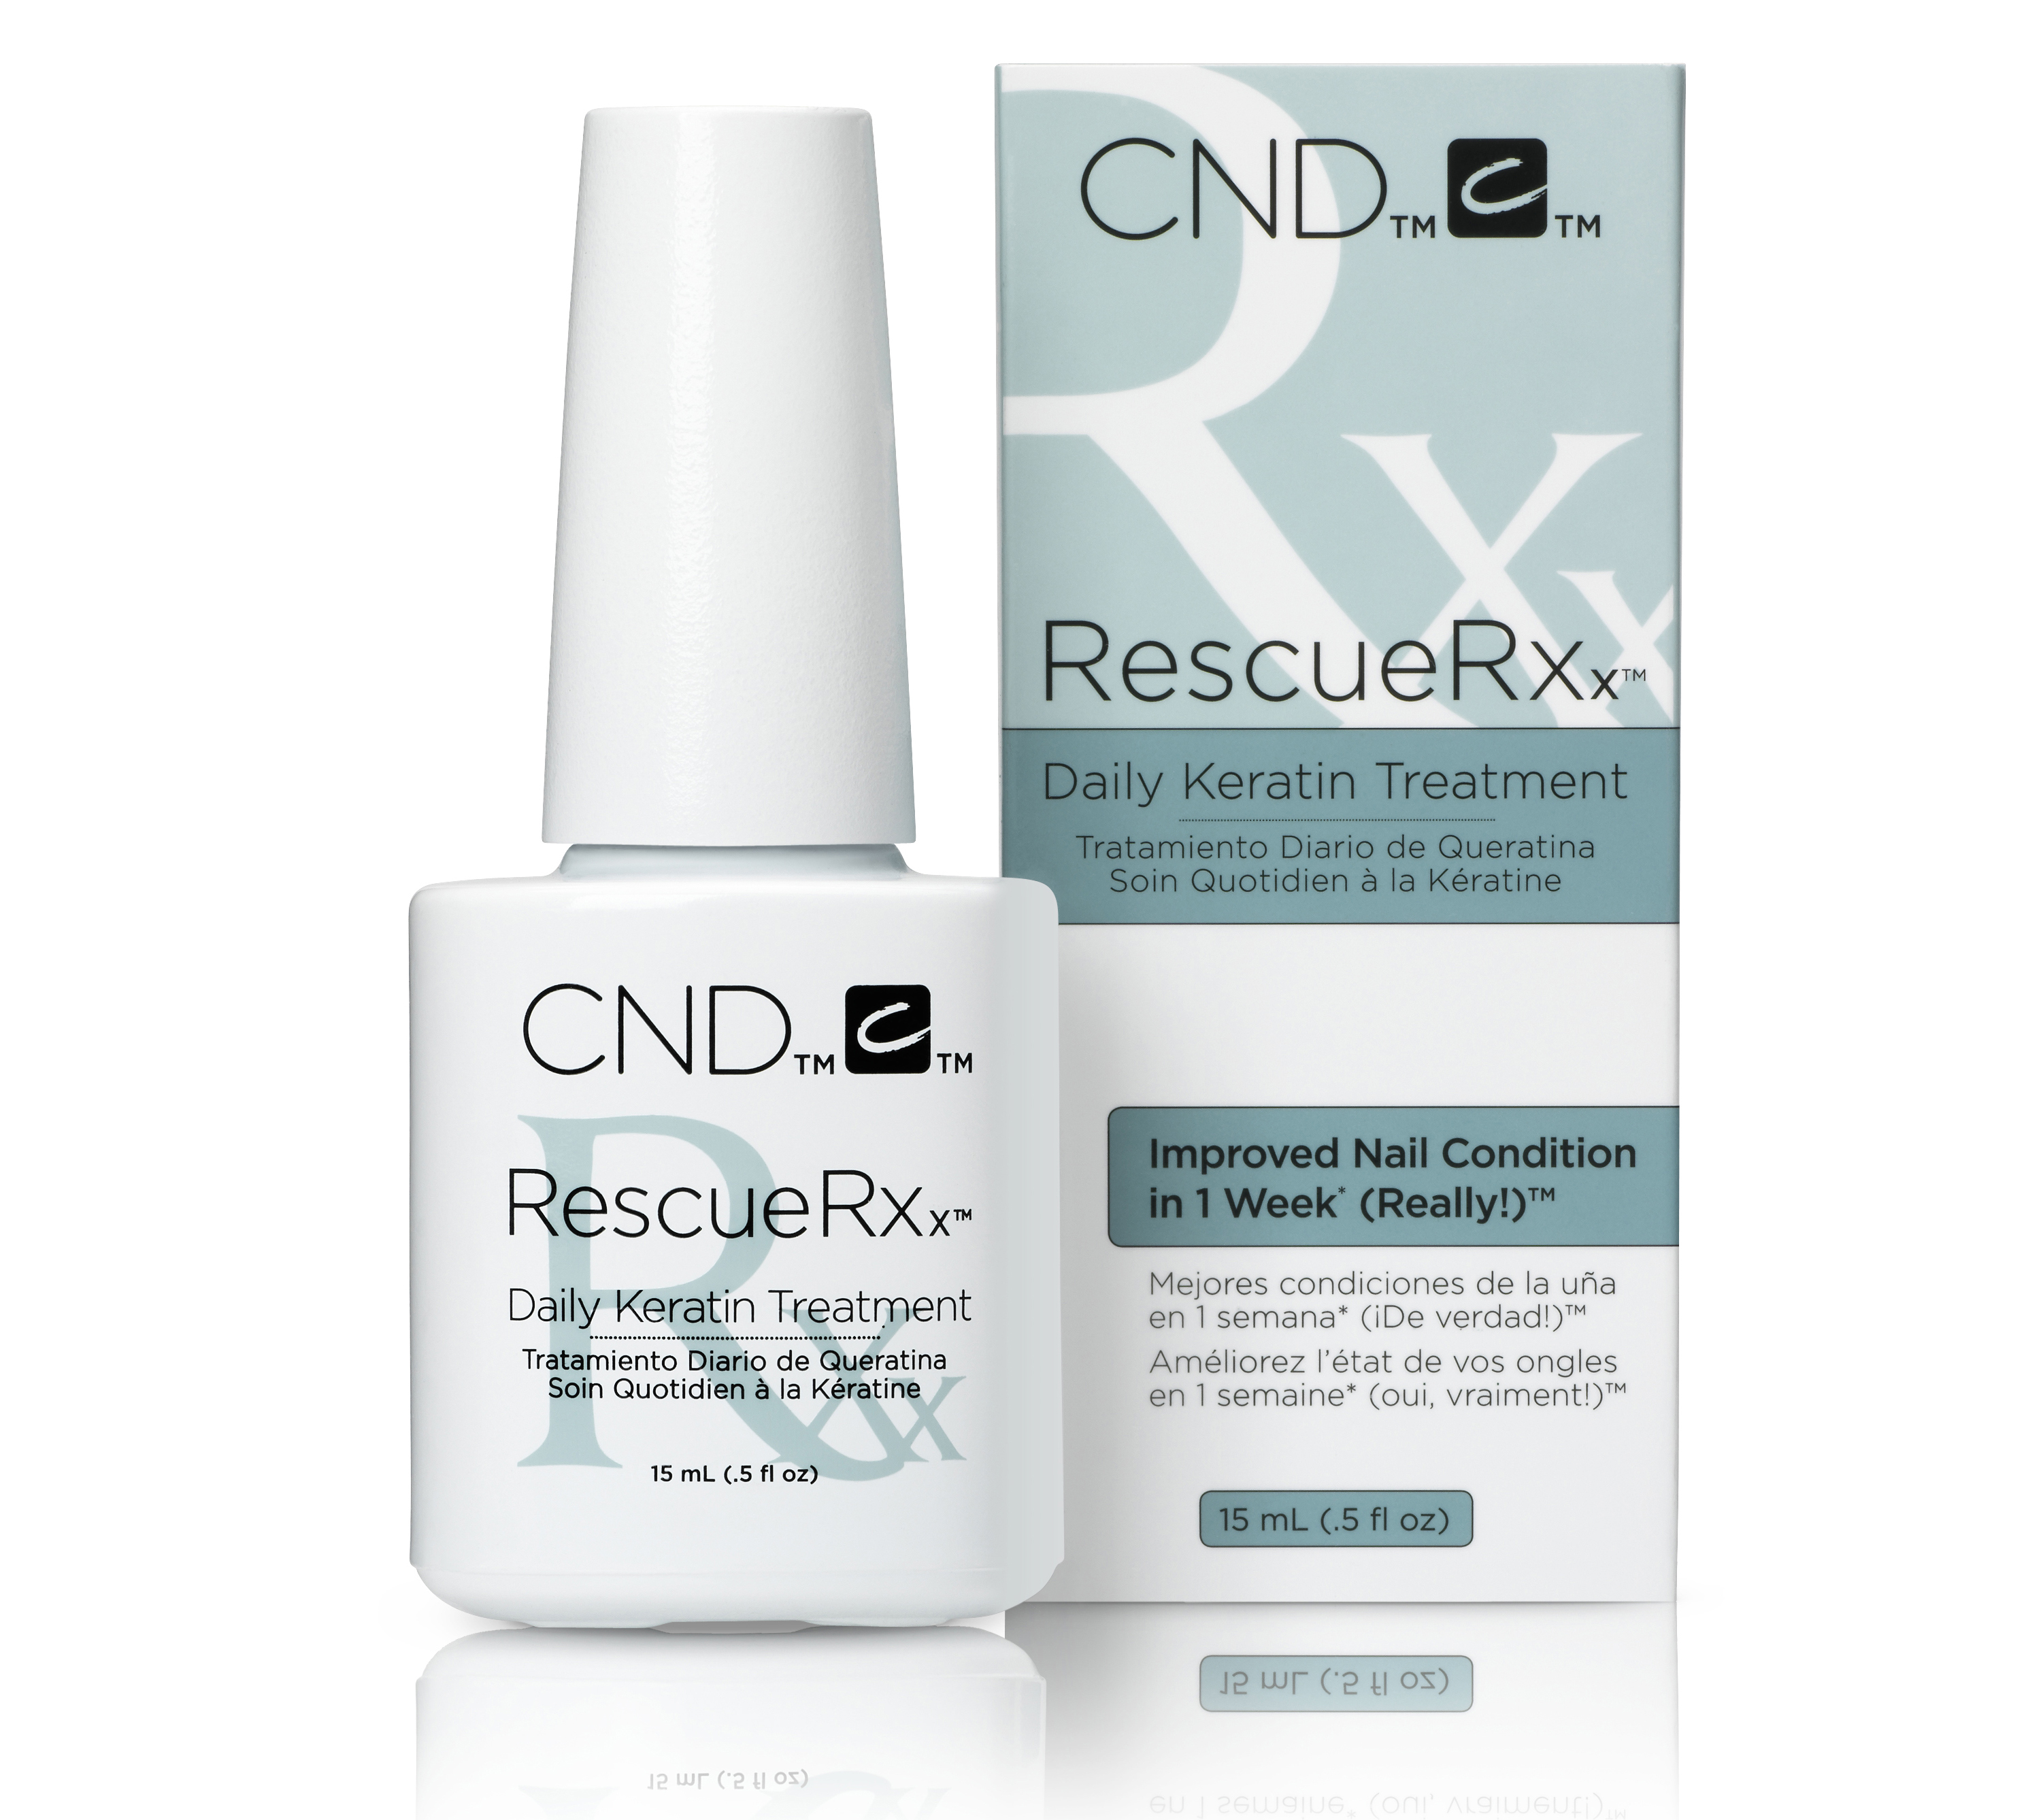 CND-RESCUERXX-Daily-Keratin-Treatment